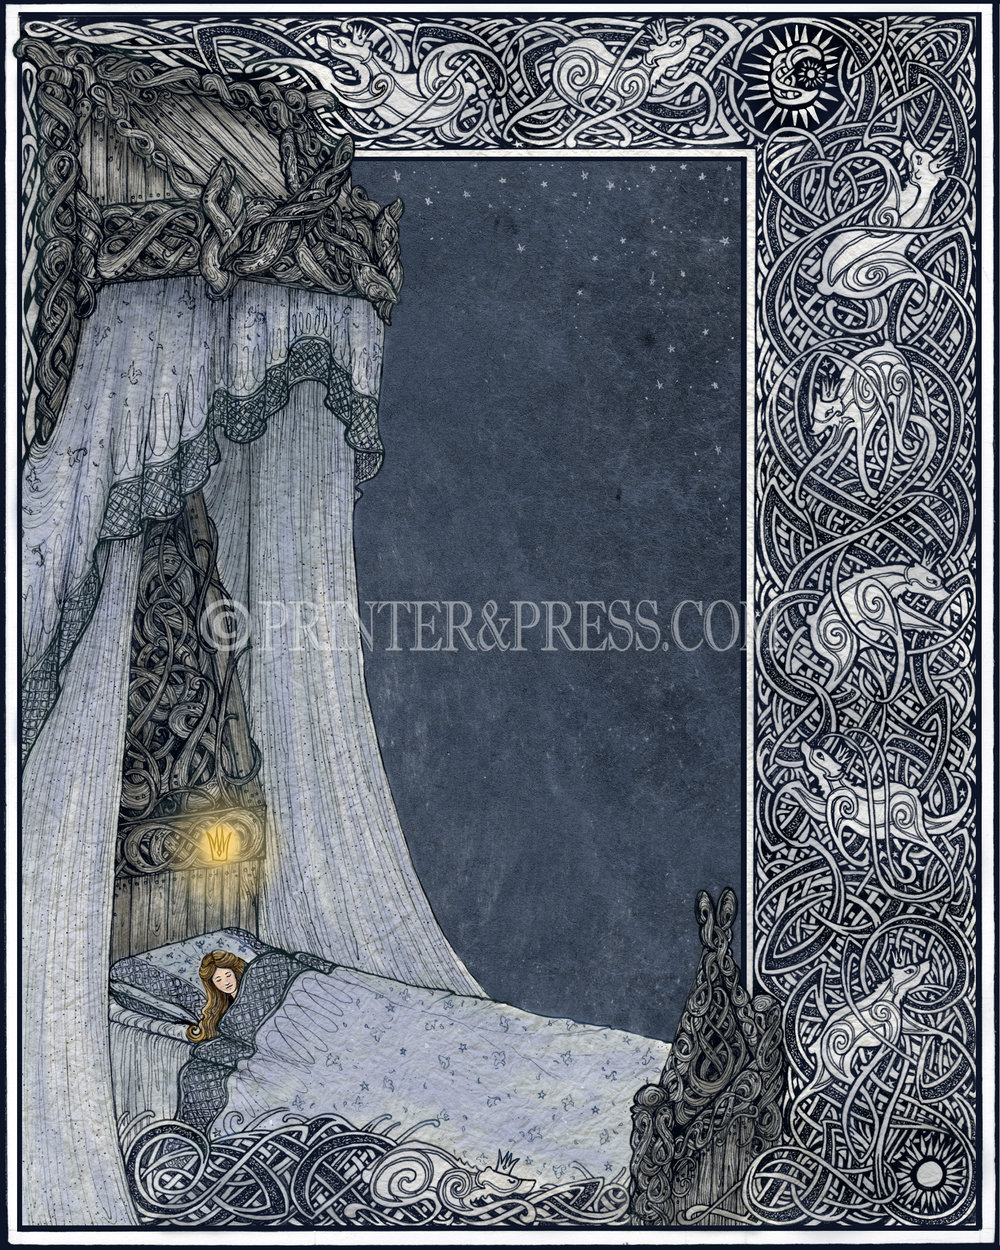 This print was drawn from the story of the Princess and the White Bear King, with the Princess dreaming of a golden crown. This piece was drawn entirely as a pen and ink drawing, scanned, and then colored digitally in Photoshop. I especially had fun drawing the twisty bear borders, and thinking of the most marvelous bed I could for her to sleep in.